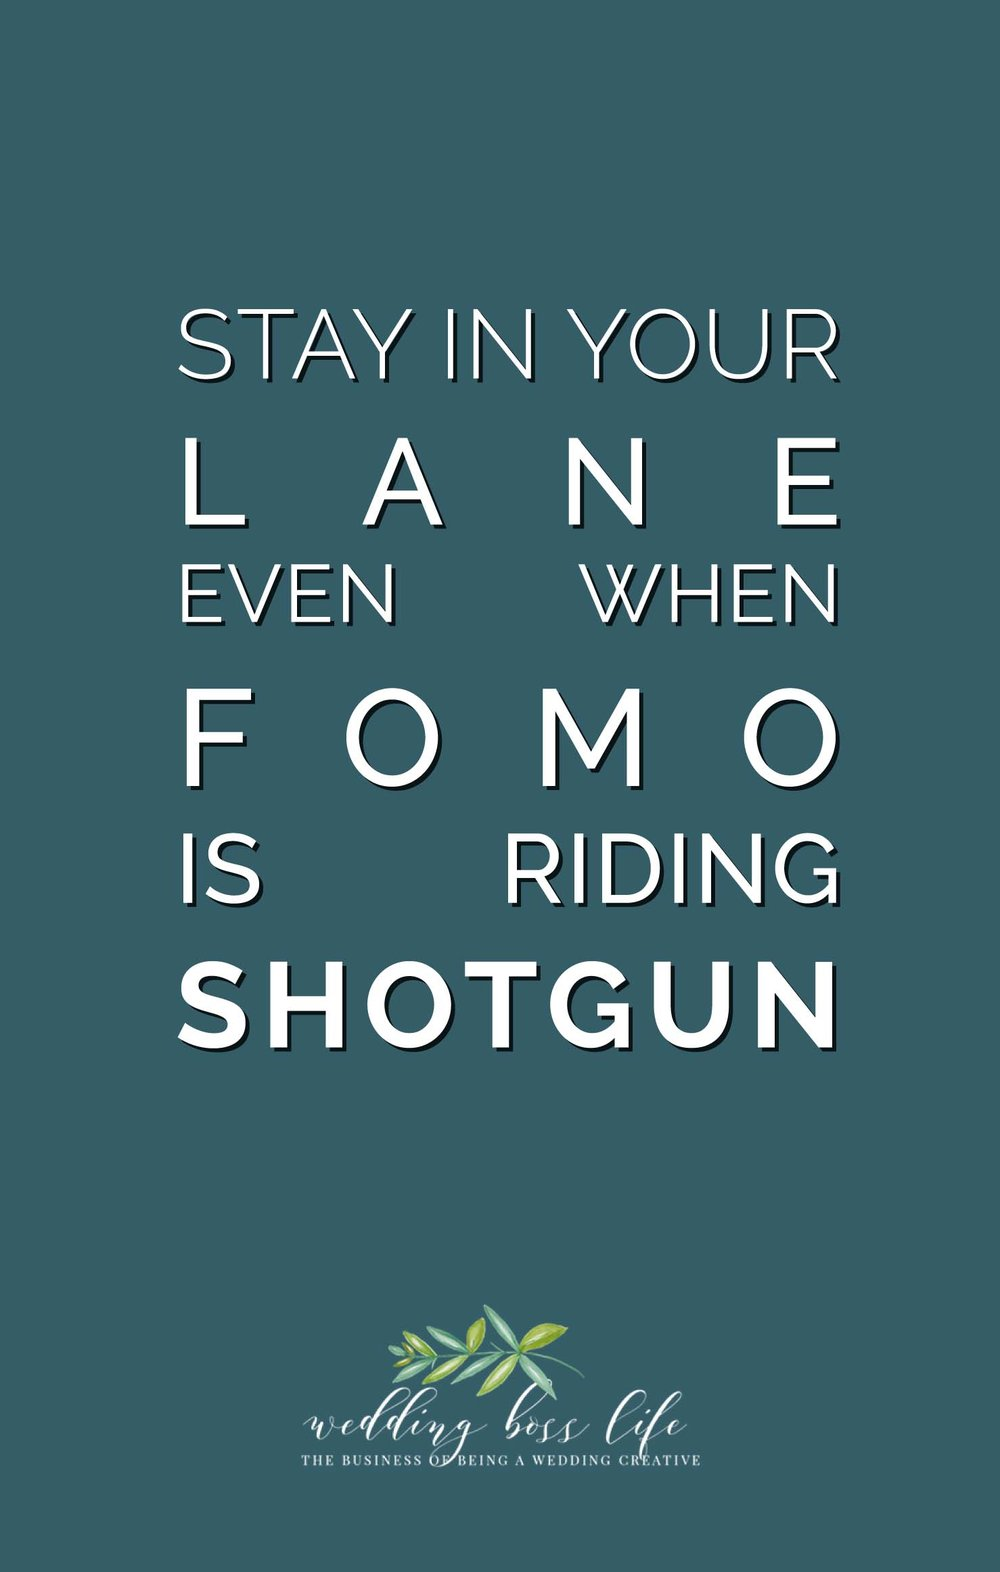 Stay In Your Lane Even When FOMO is Riding Shotgun